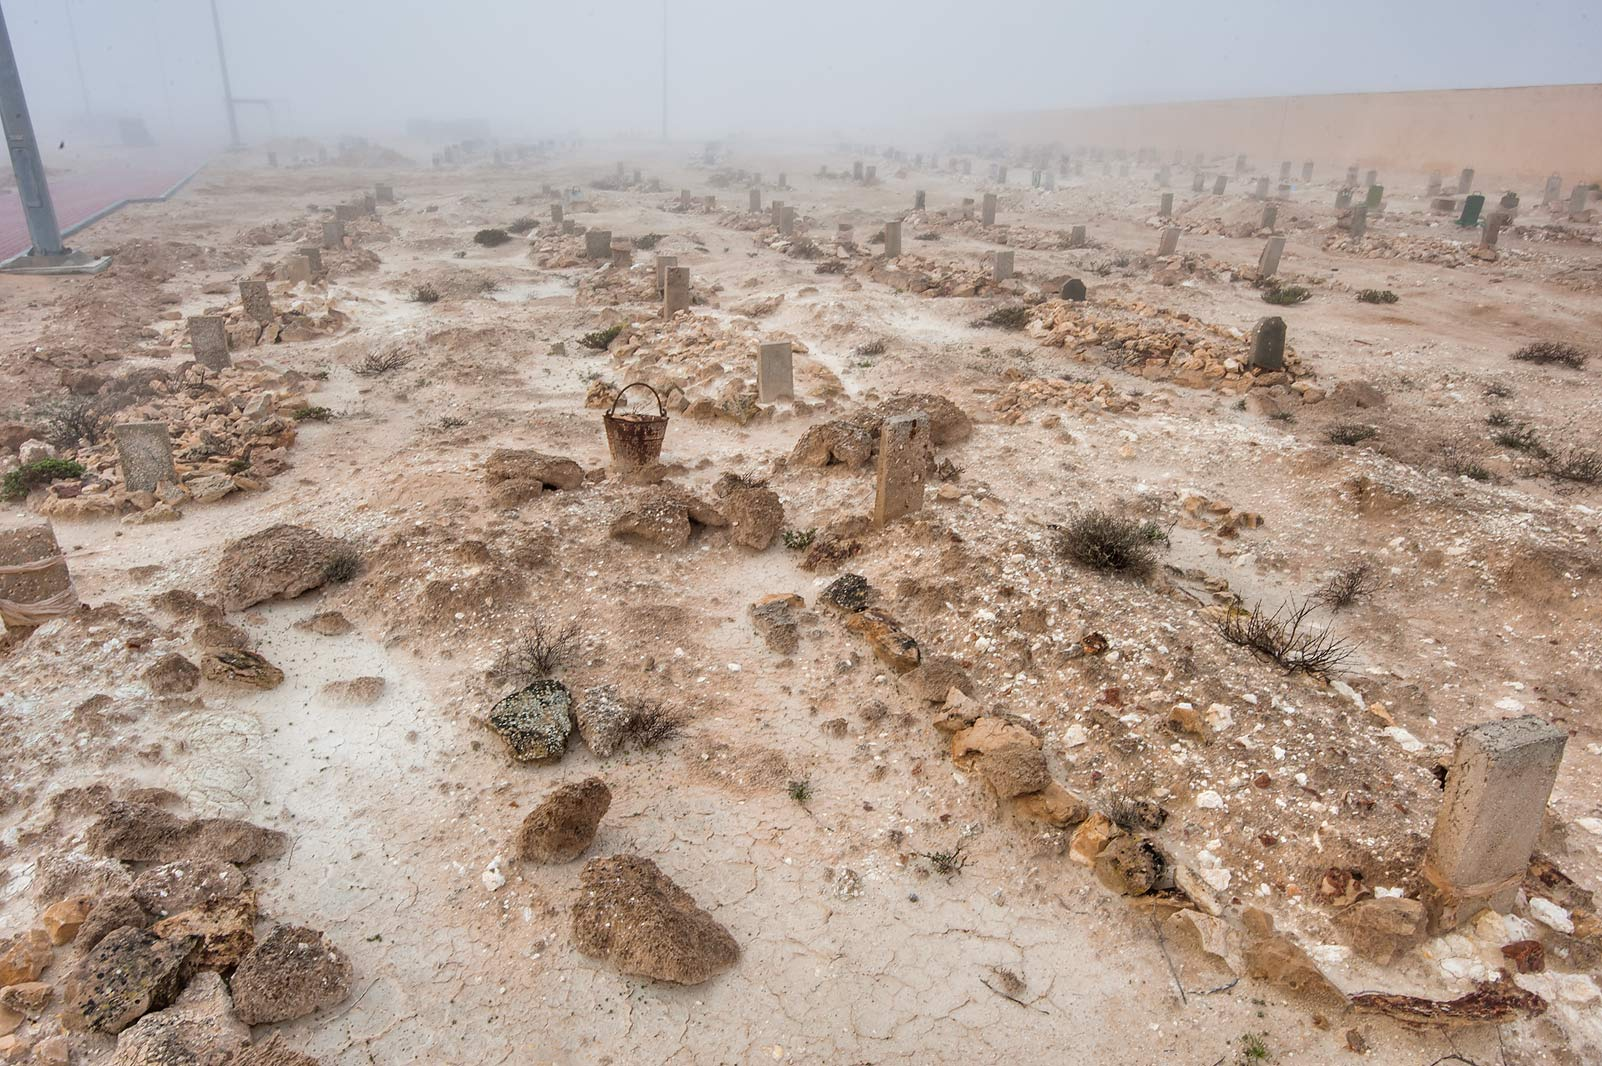 Rows of tombs in Al Khor Cemetery in fog. North from Al Khor, Qatar